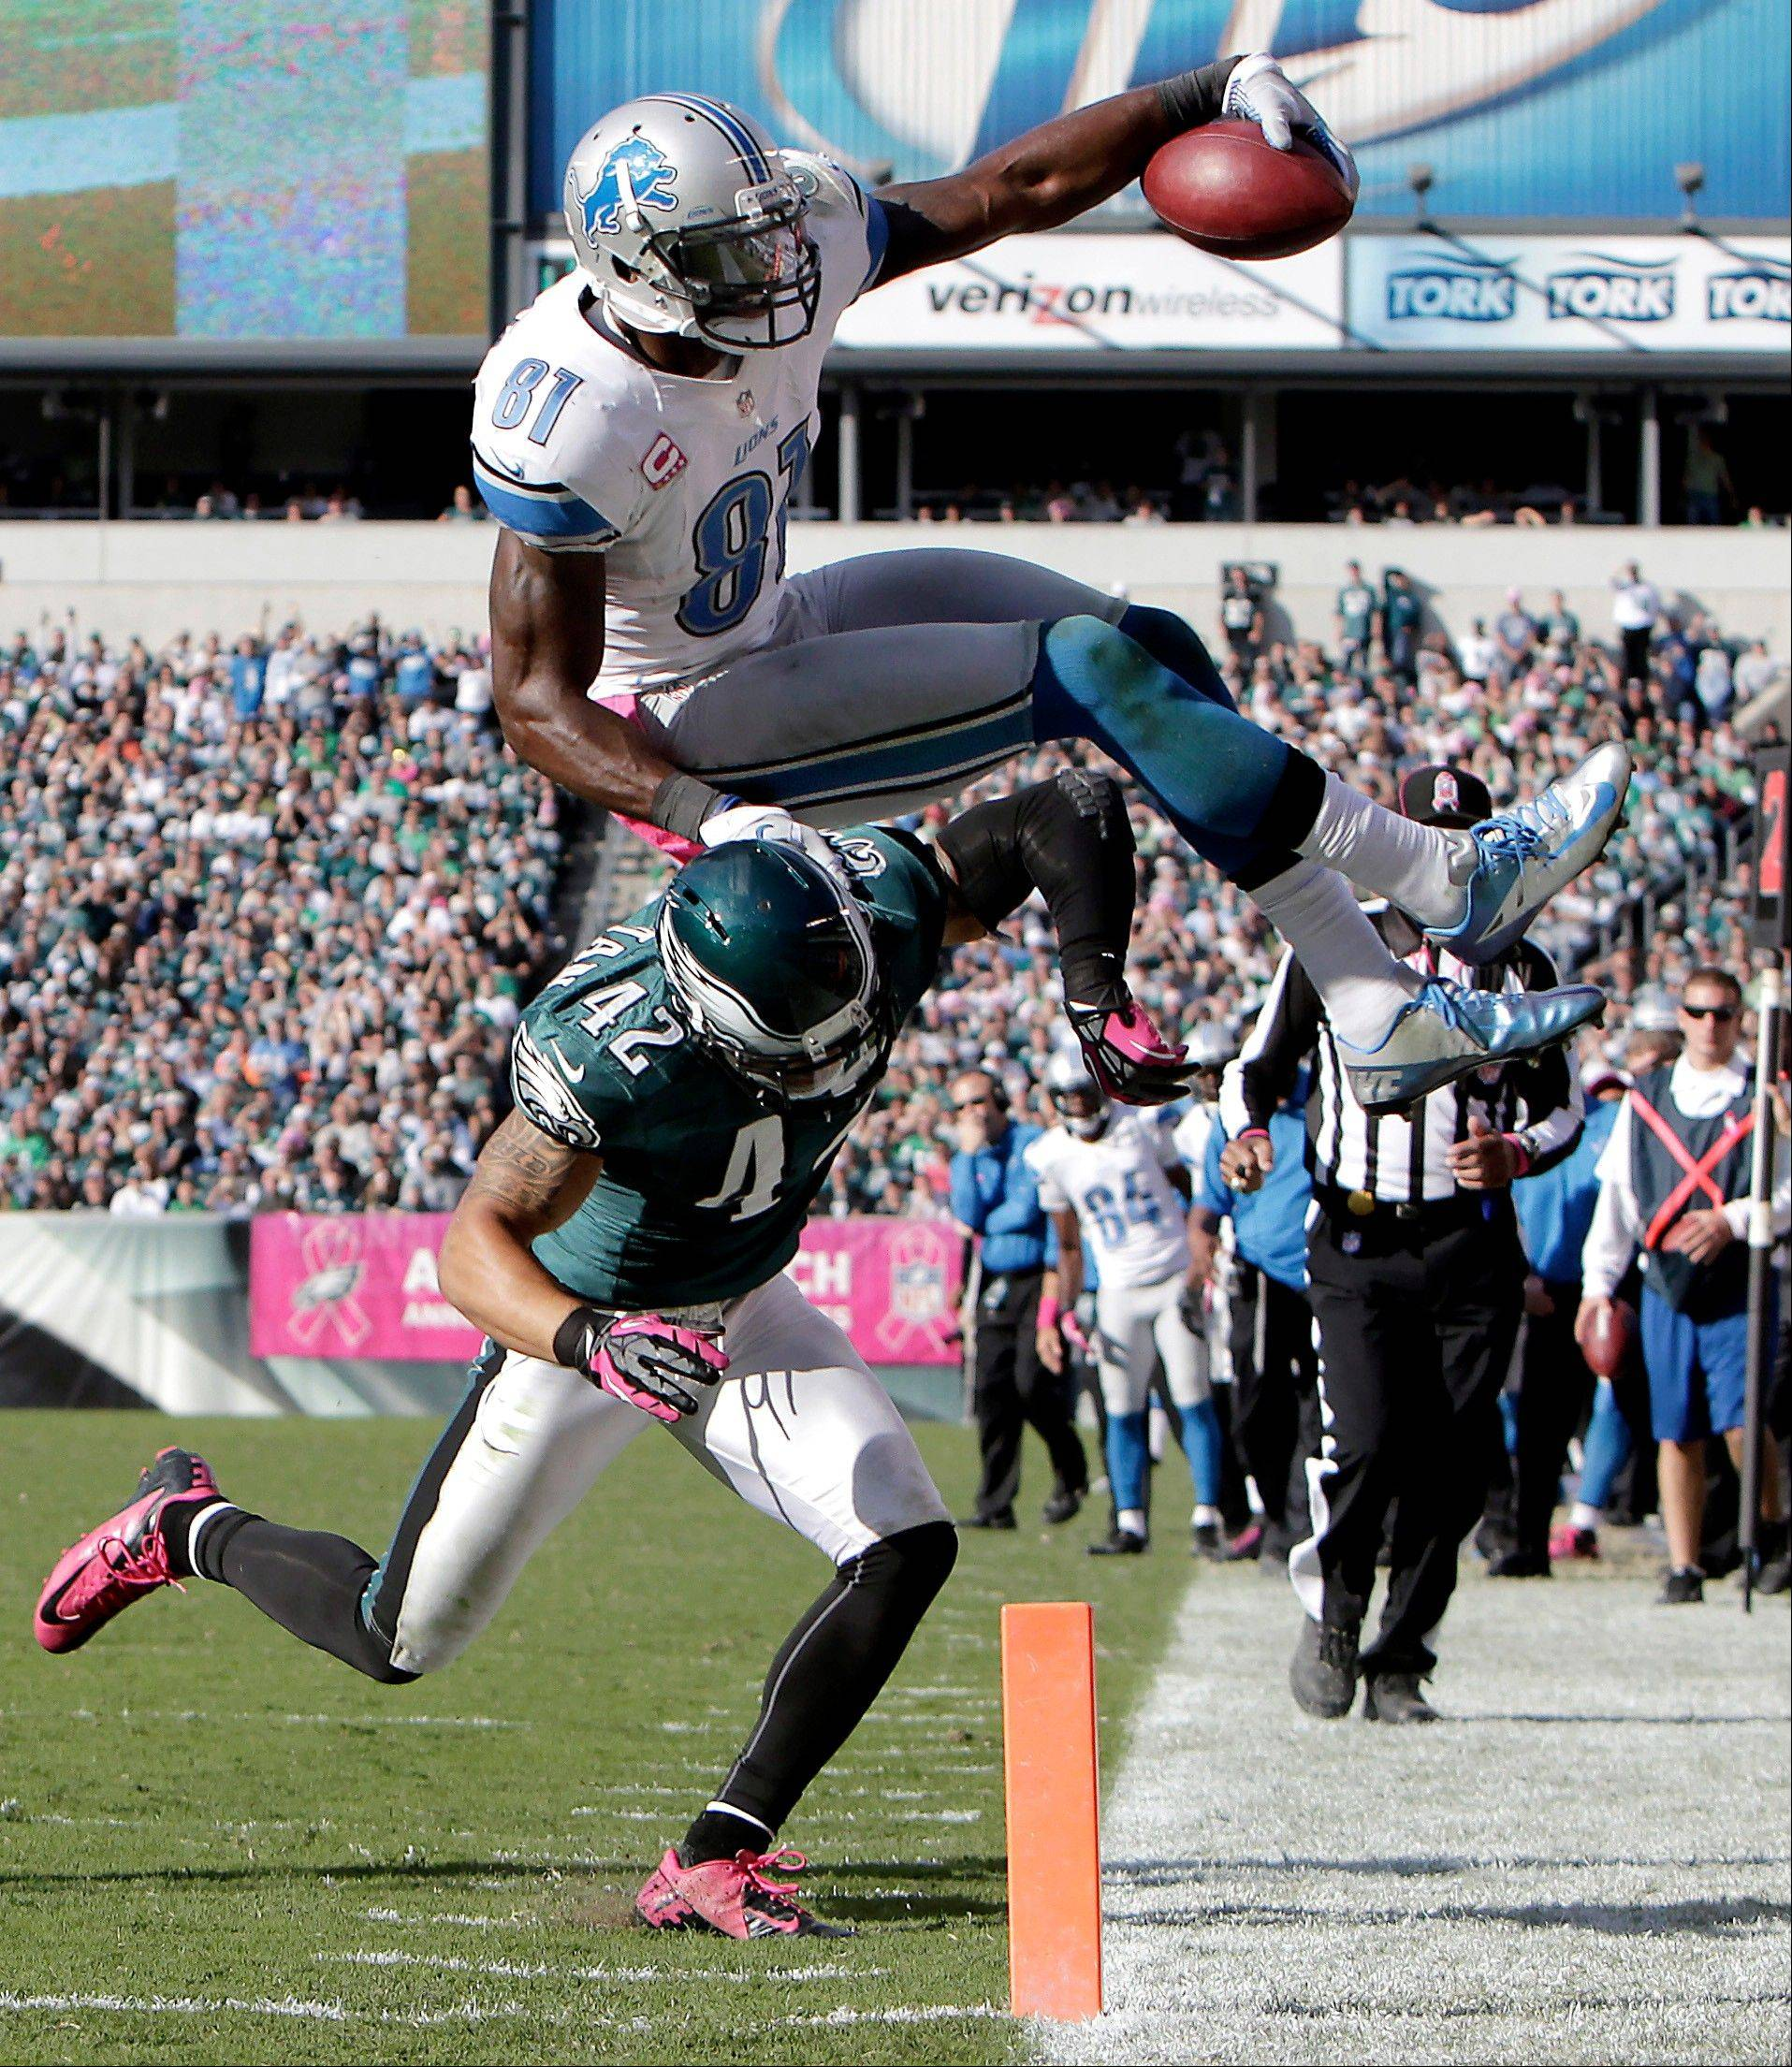 The Eagles' Kurt Coleman knocks Detroit wide receiver Calvin Johnson out of bounds on the 1-yard line last week in Philadelphia.